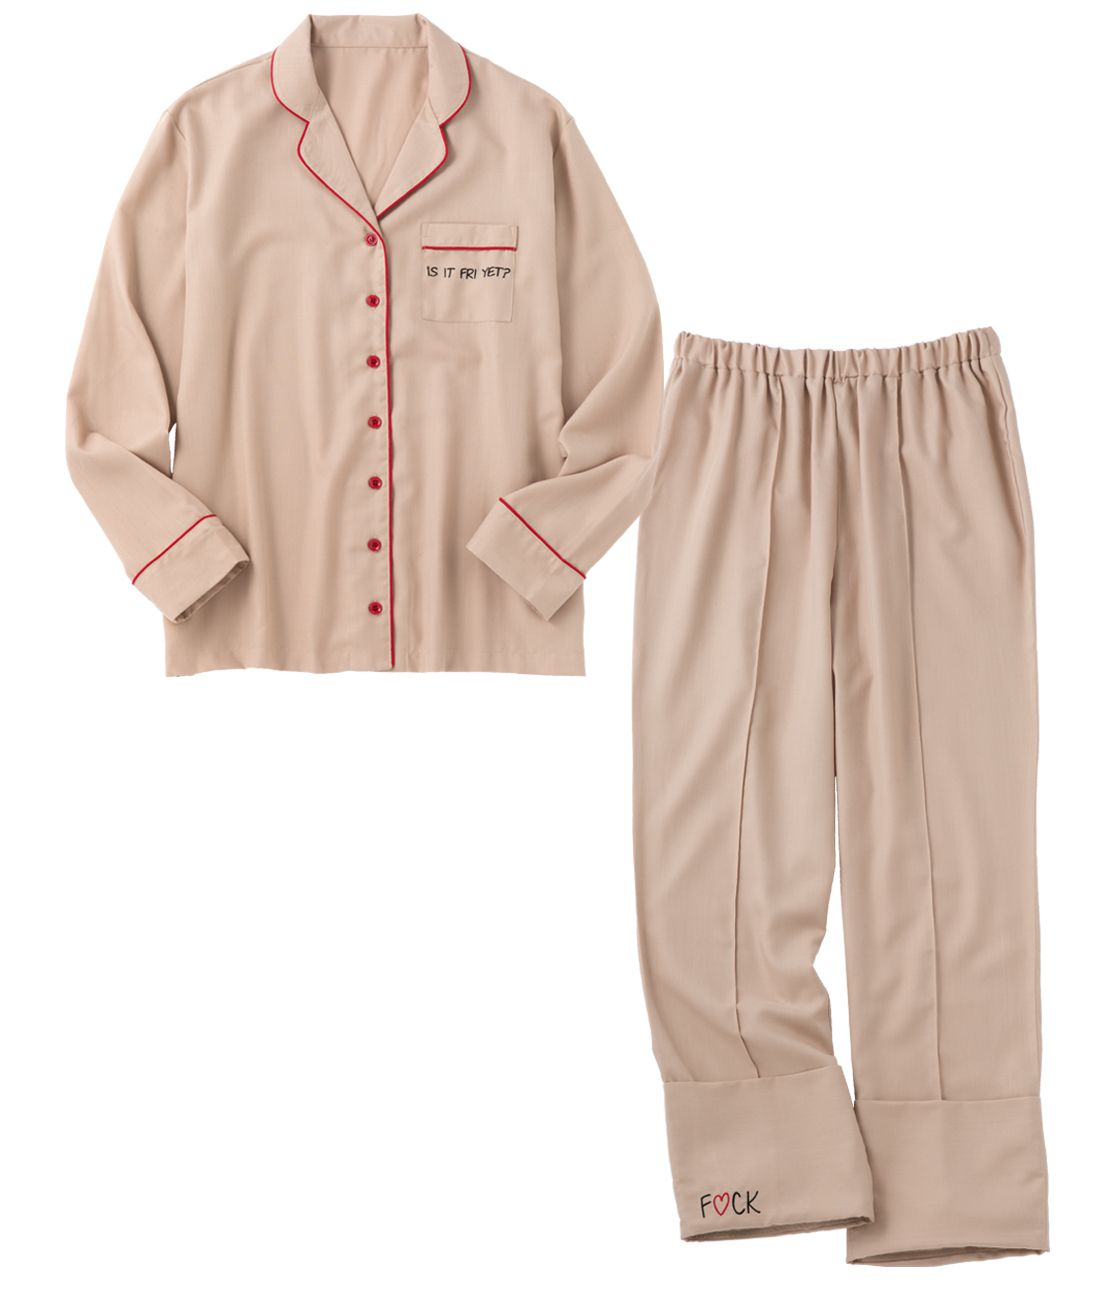 YM shirt pajamas